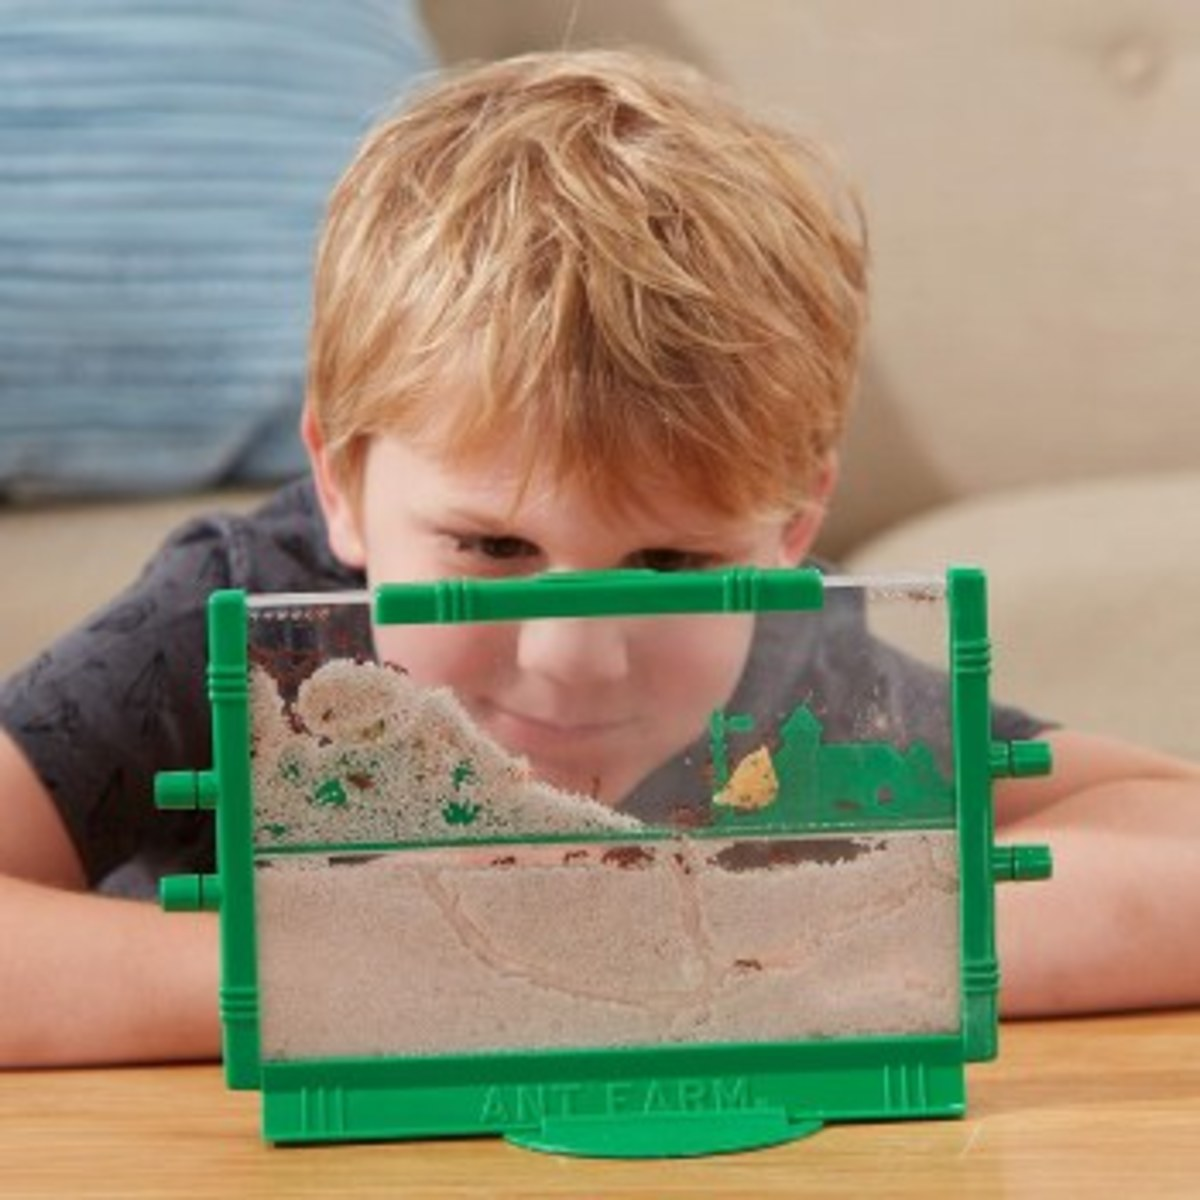 Ant farms inspire an interest in observation, research, and animal behavior.